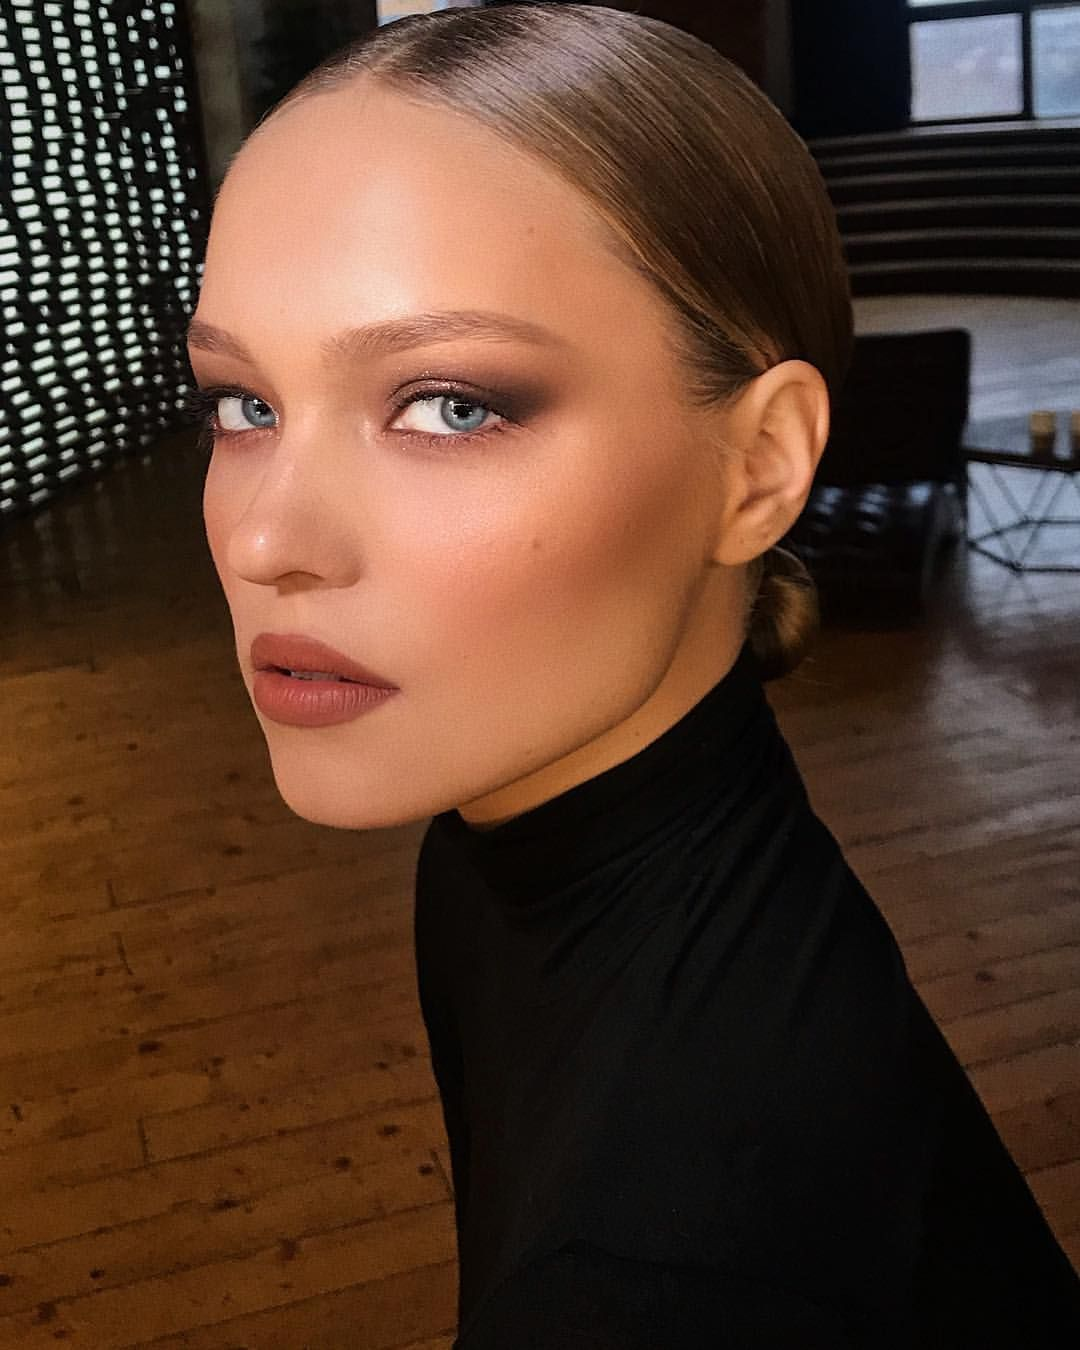 Classic makeup look using all warm neutral shades from @marcbeauty on beautiful @widjeo for my last day in Moscow today. Next stop St Petersburg